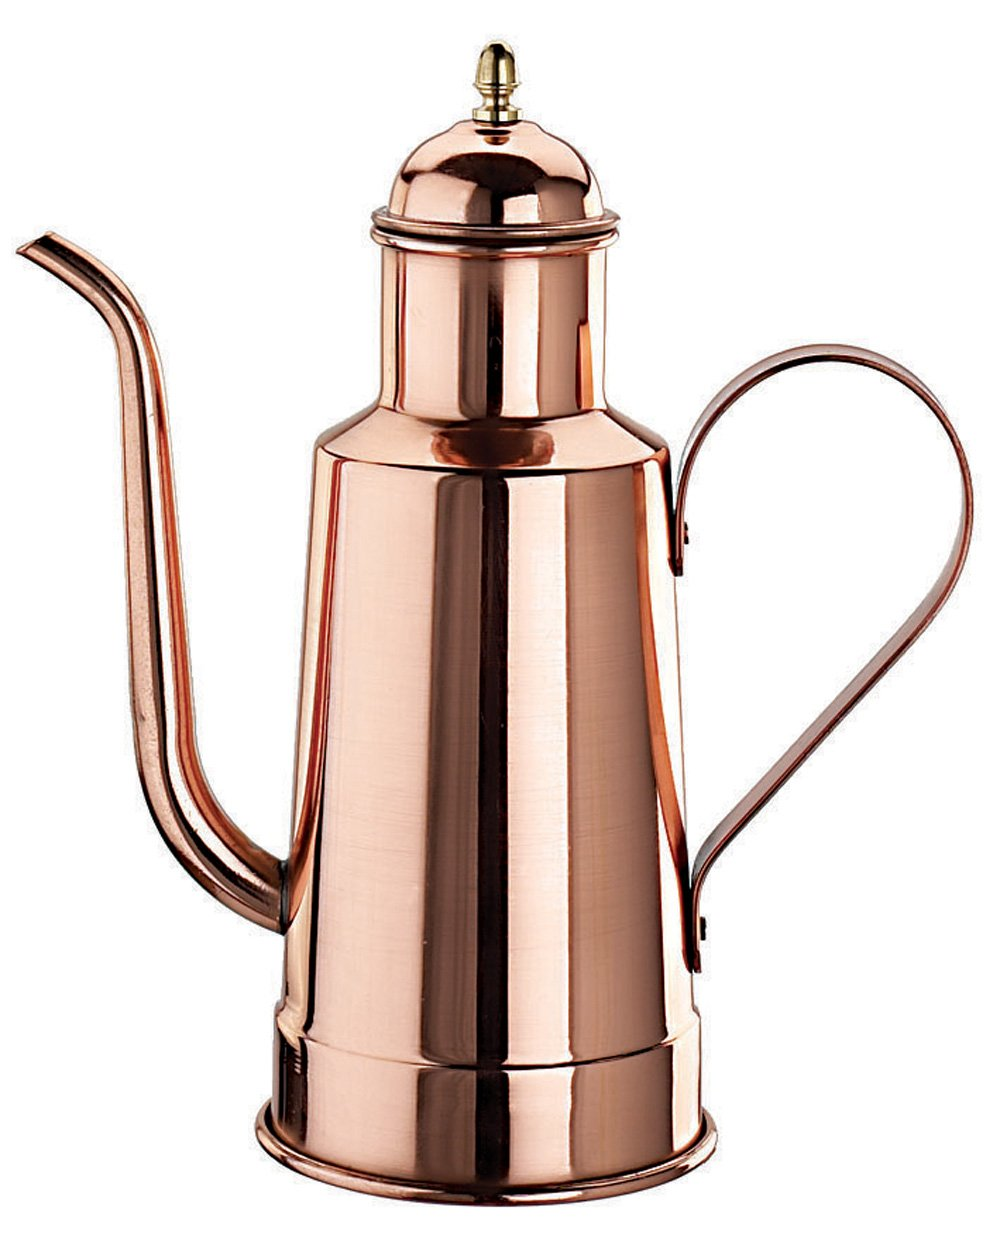 Paderno World Cuisine 9-Inch High Copper/Tin Oil Dispenser 41781-05